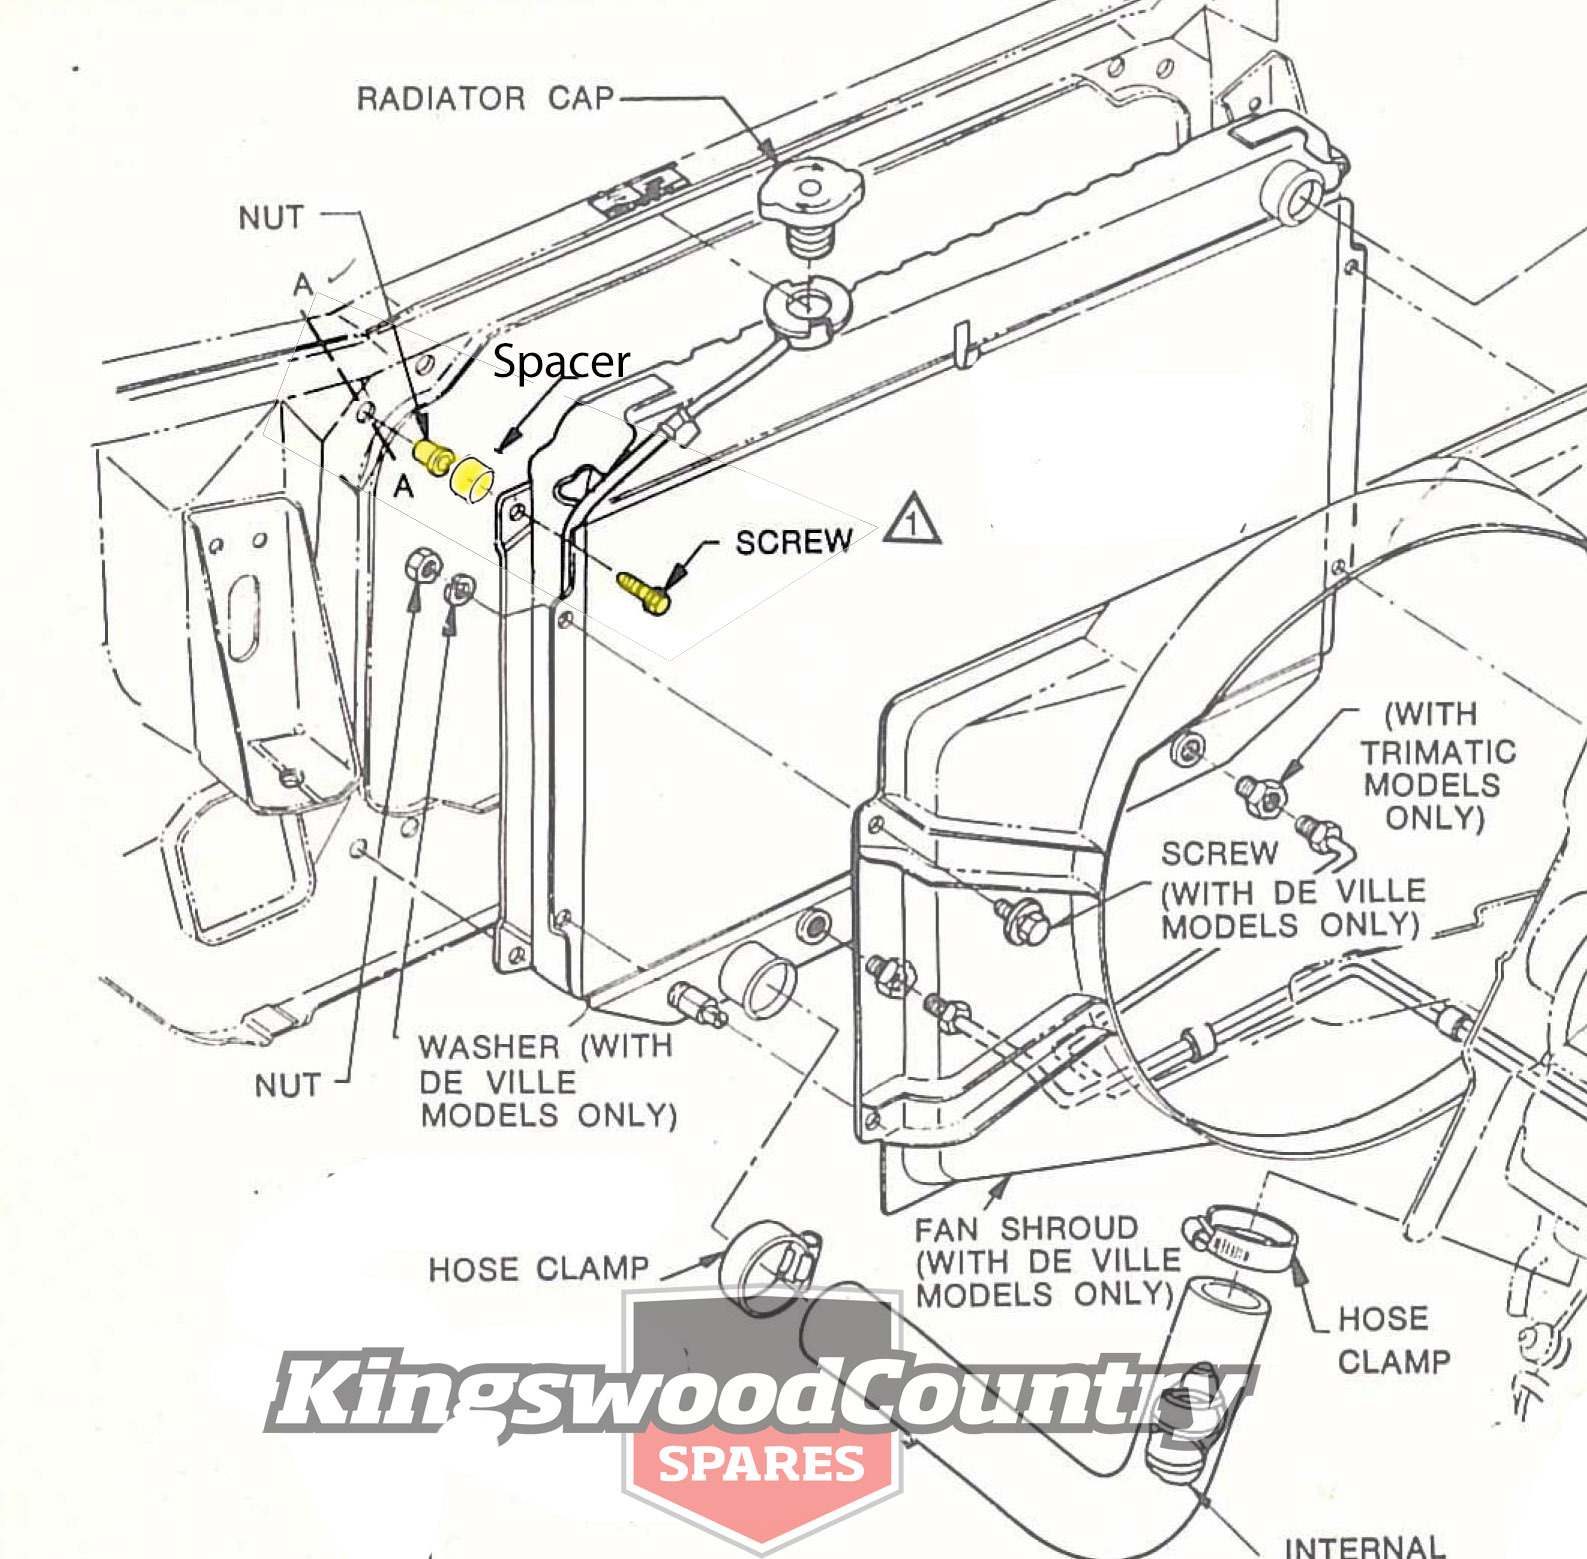 wb one tonner wiring diagram 200 meter track with measurements holden alloy radiator fitting kit mount bolts v8 6cyl hq